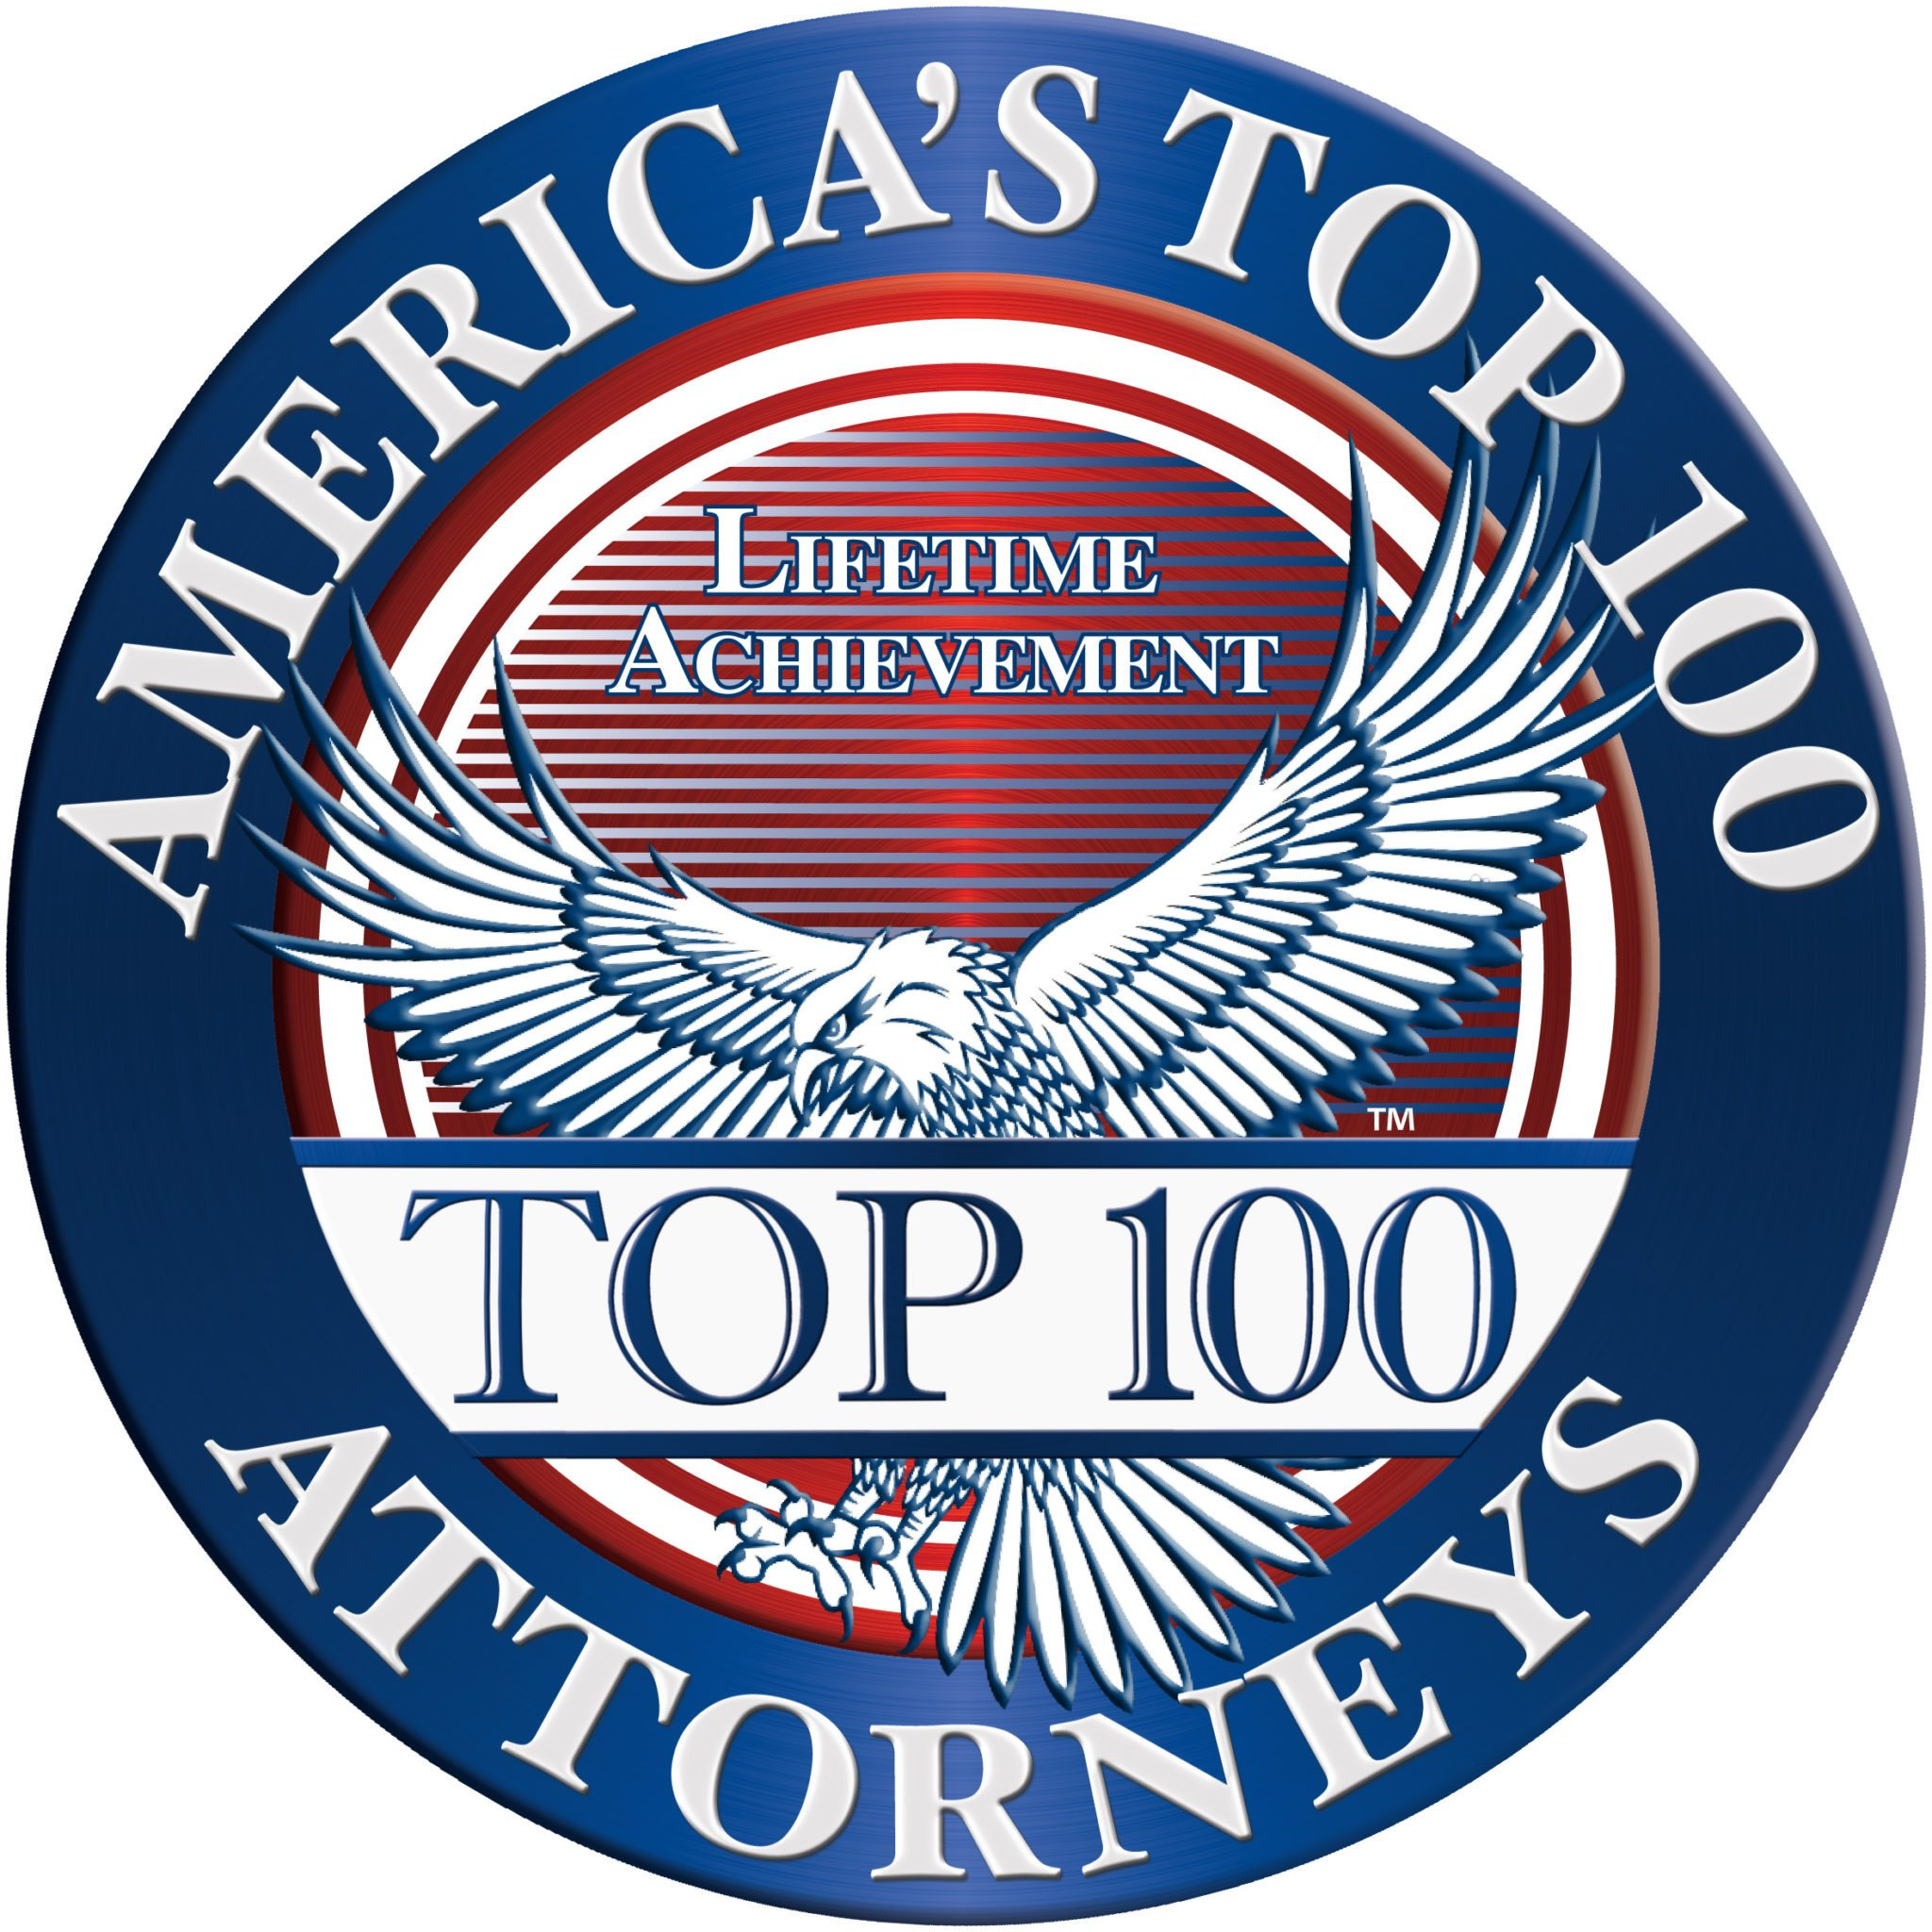 Grenada law firm gore kilpatrick dambrino pllc whats new gkd is alta best practices certified 1betcityfo Gallery